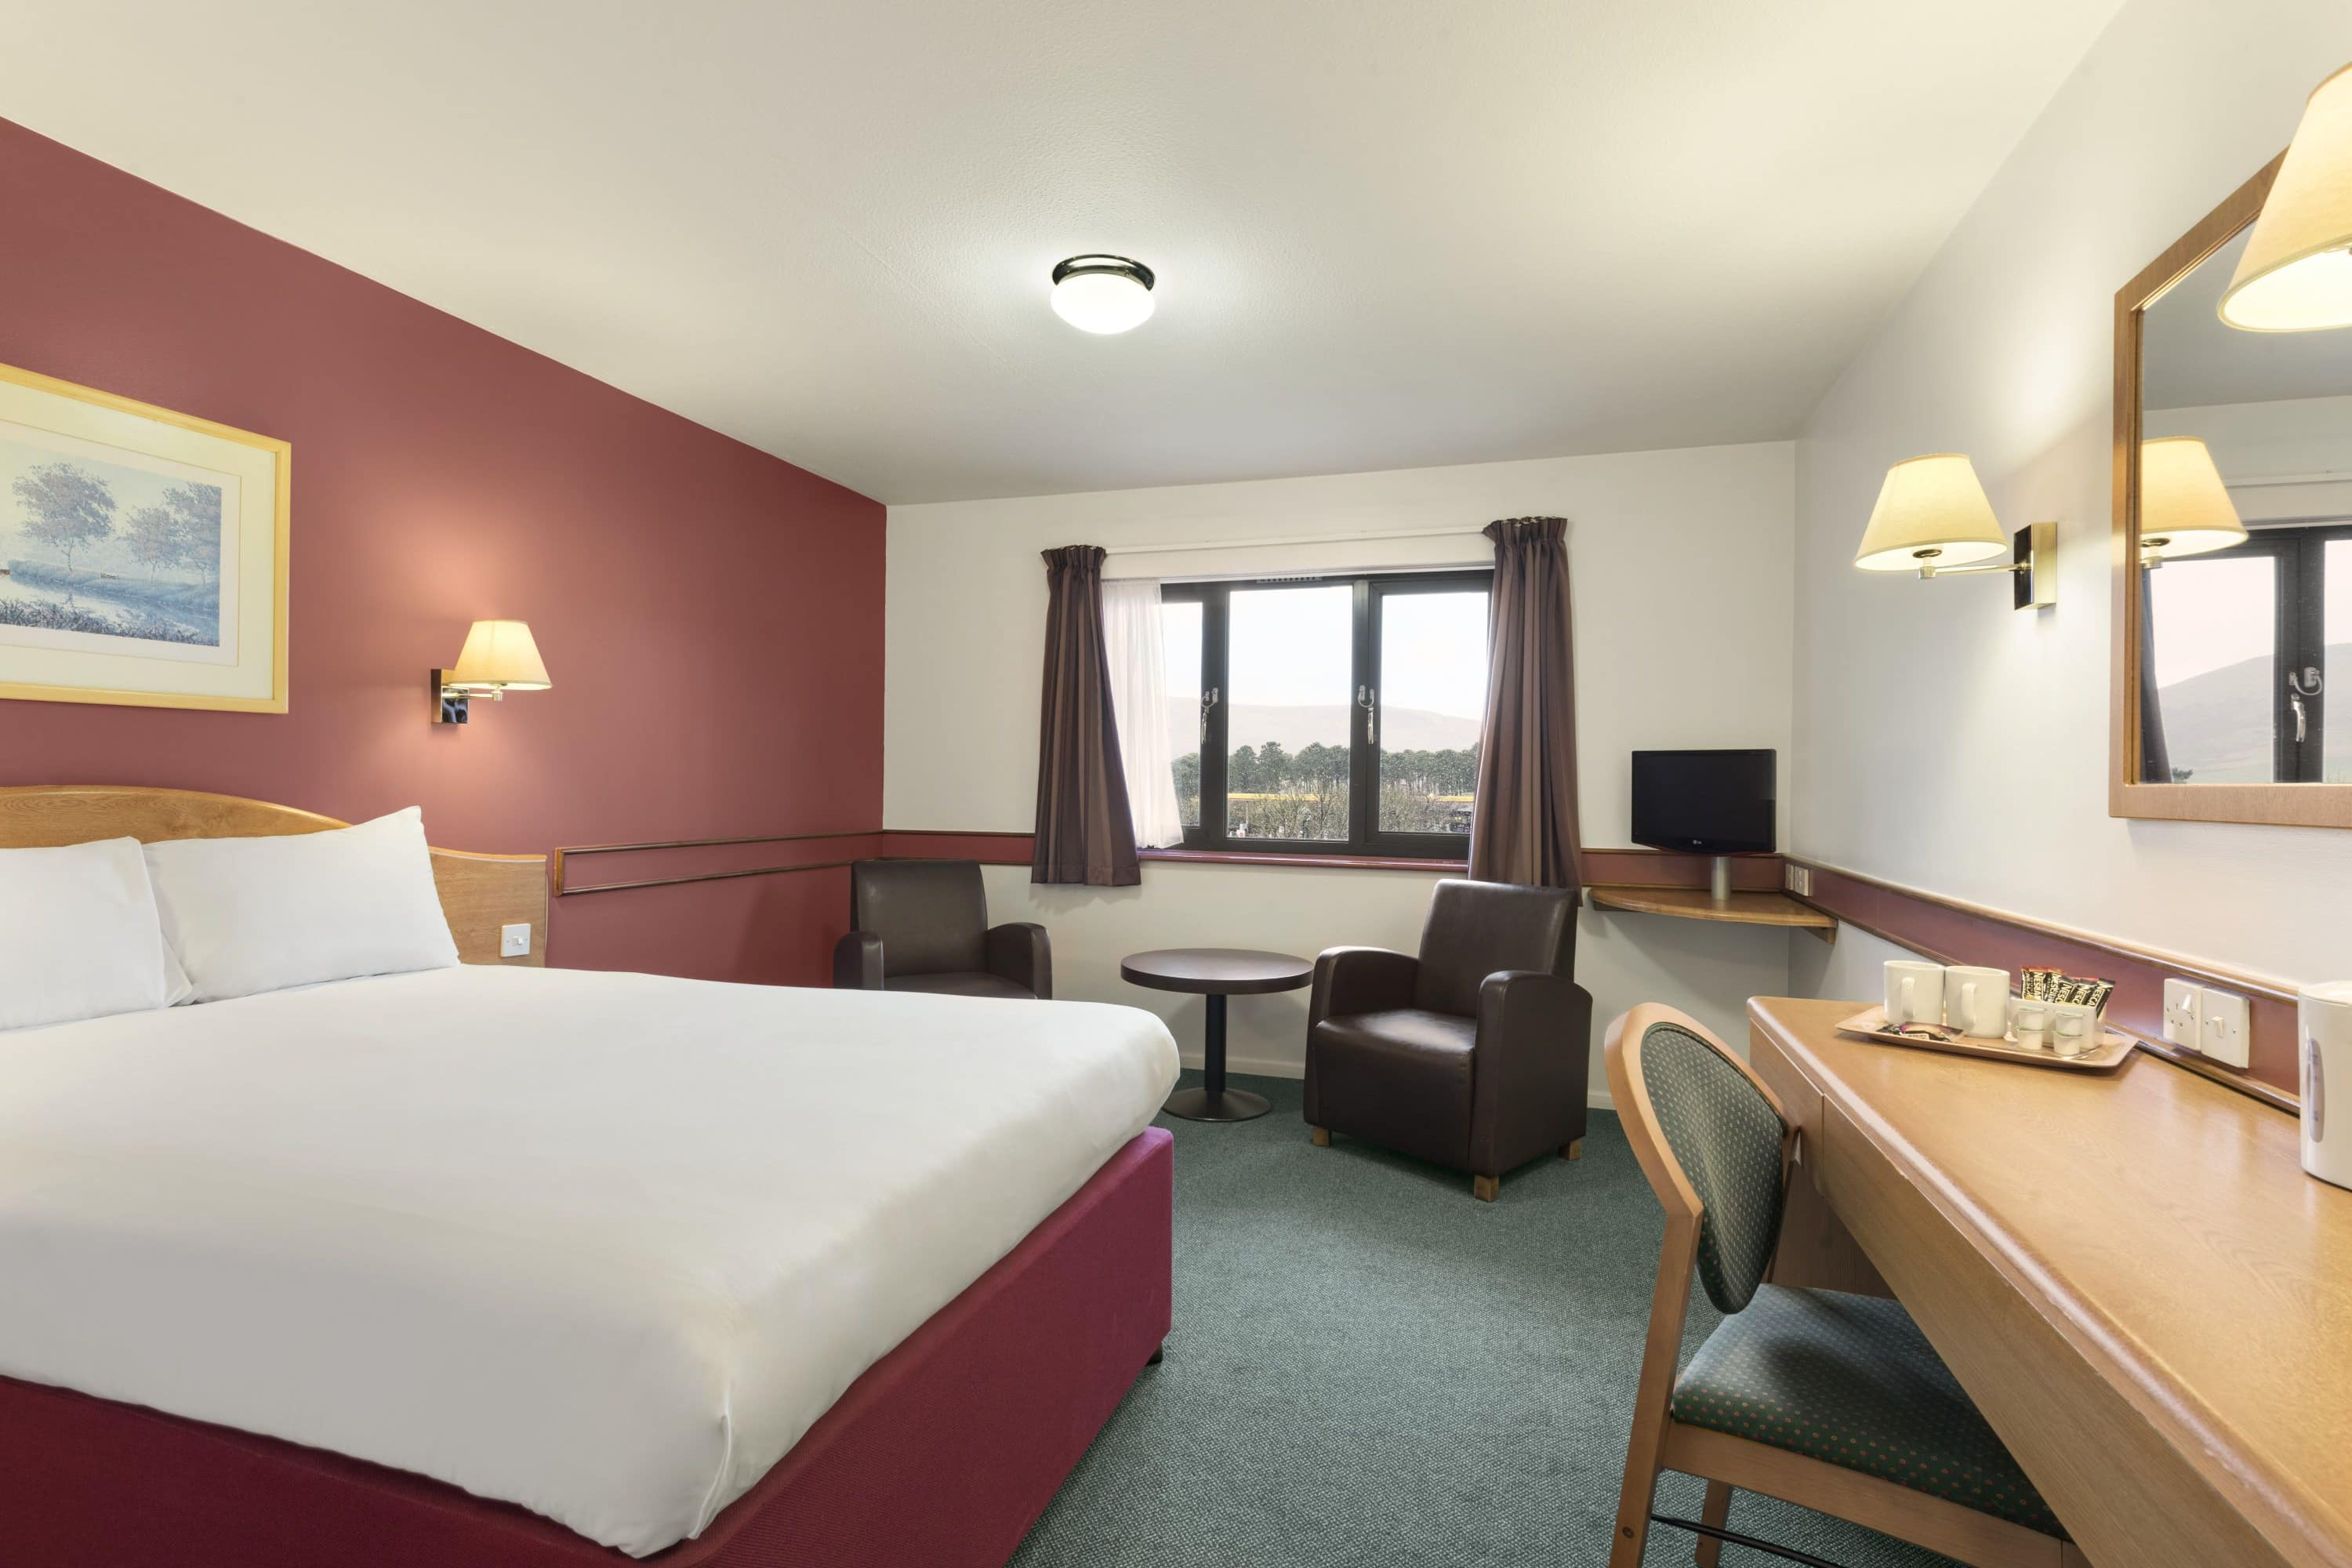 Guest room at the Days Inn Abington M74 in Lanarkshire, Other than US/Canada